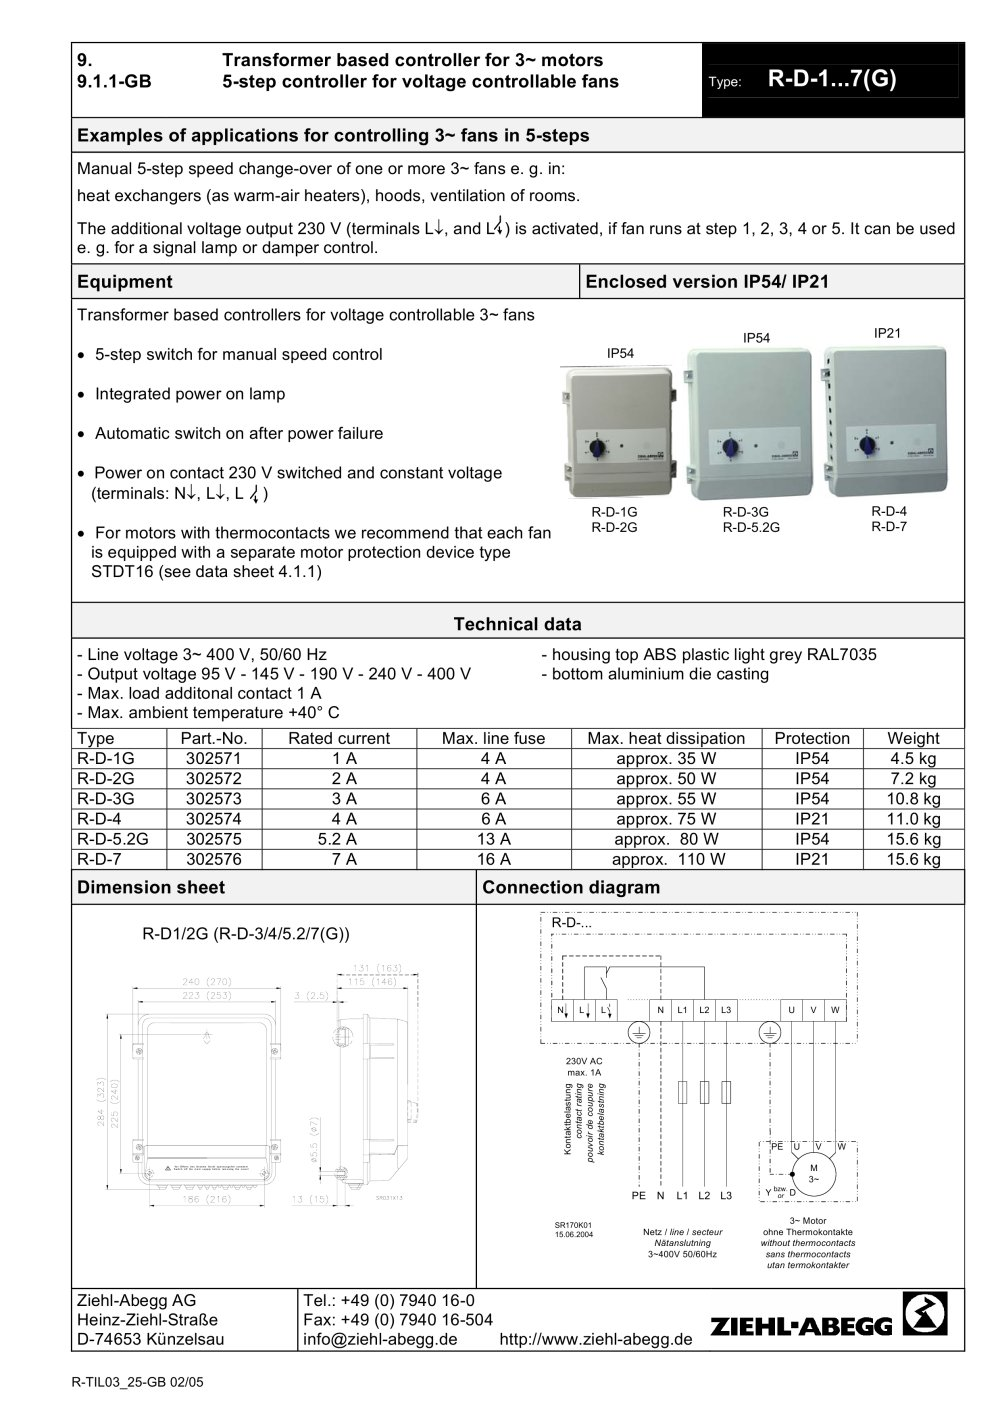 r d 17 171783_1b r d 1 7 ziehl abegg pdf catalogue technical documentation ziehl abegg wiring diagram at reclaimingppi.co